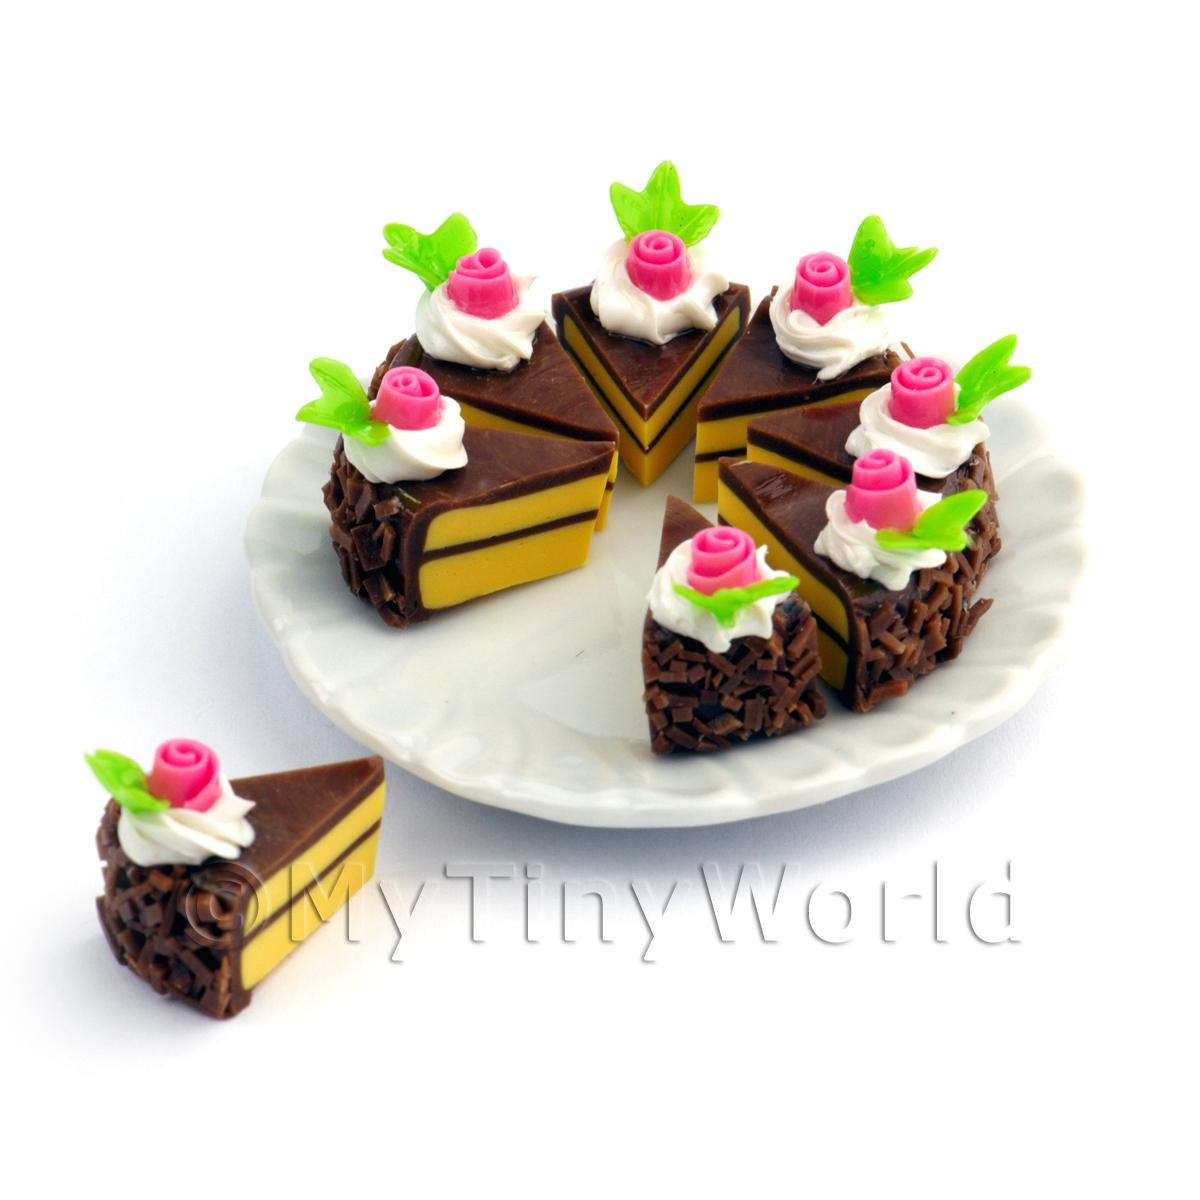 Dolls House Miniature Whole Sliced Chocolate Rose Cake